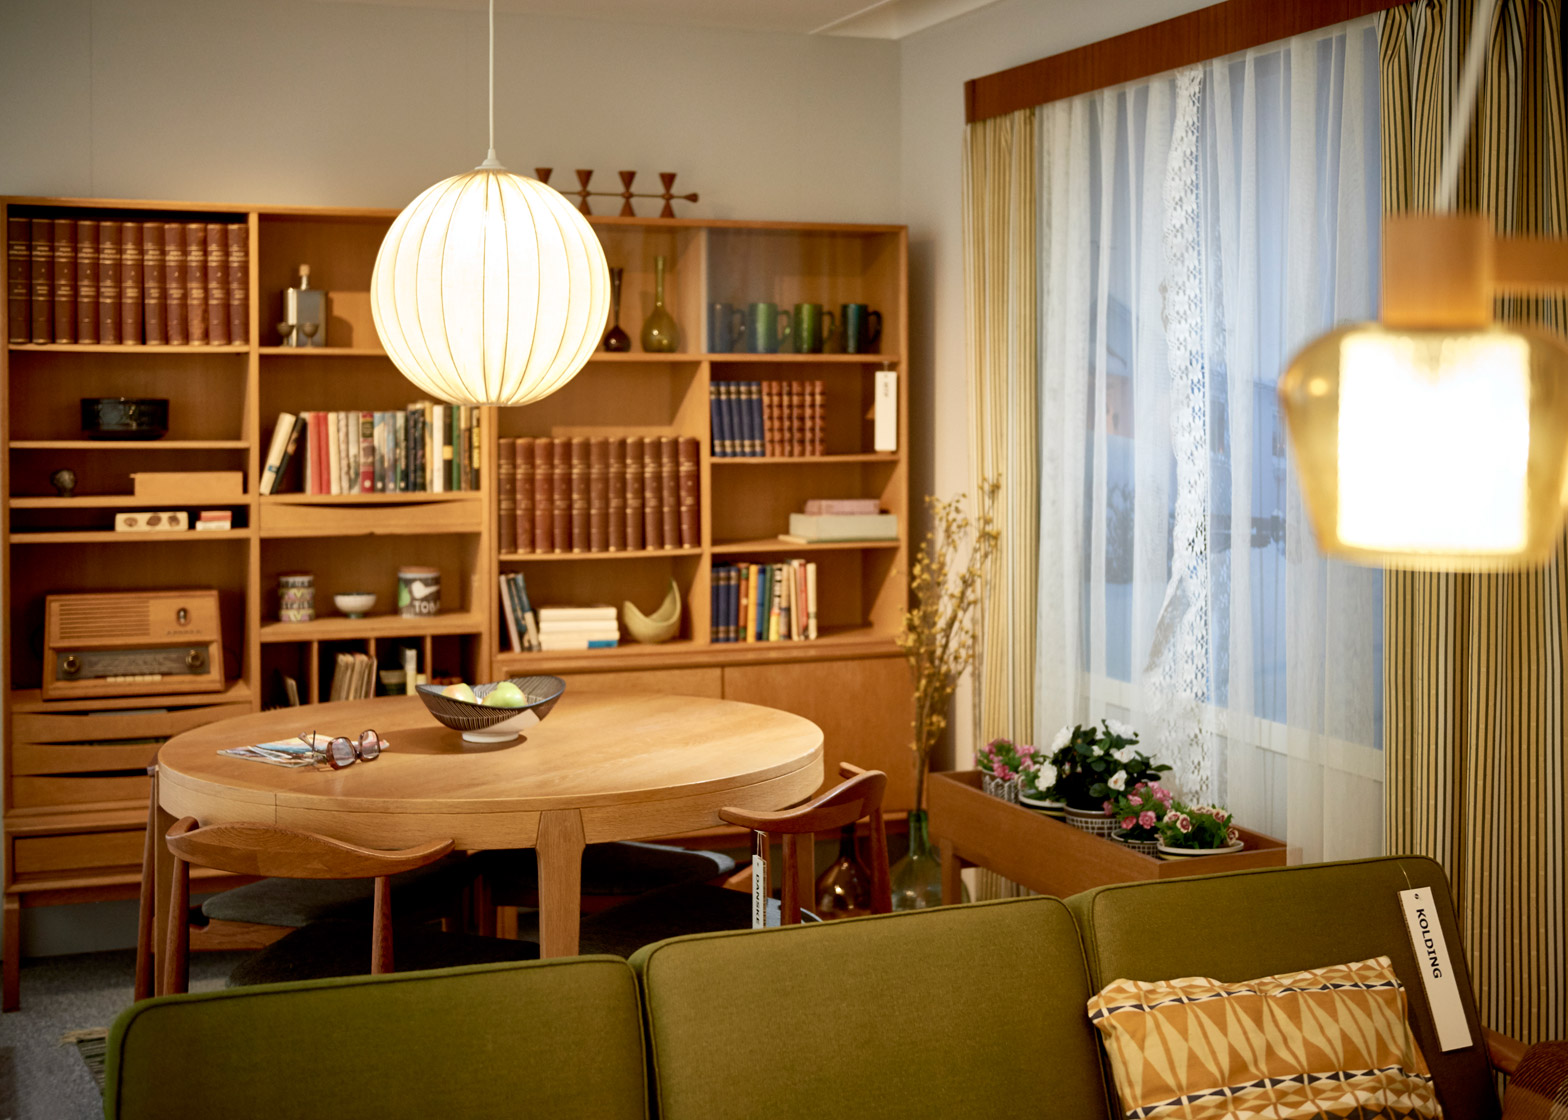 An Ikea museum will open in Sweden this month - Curbed - photo#34